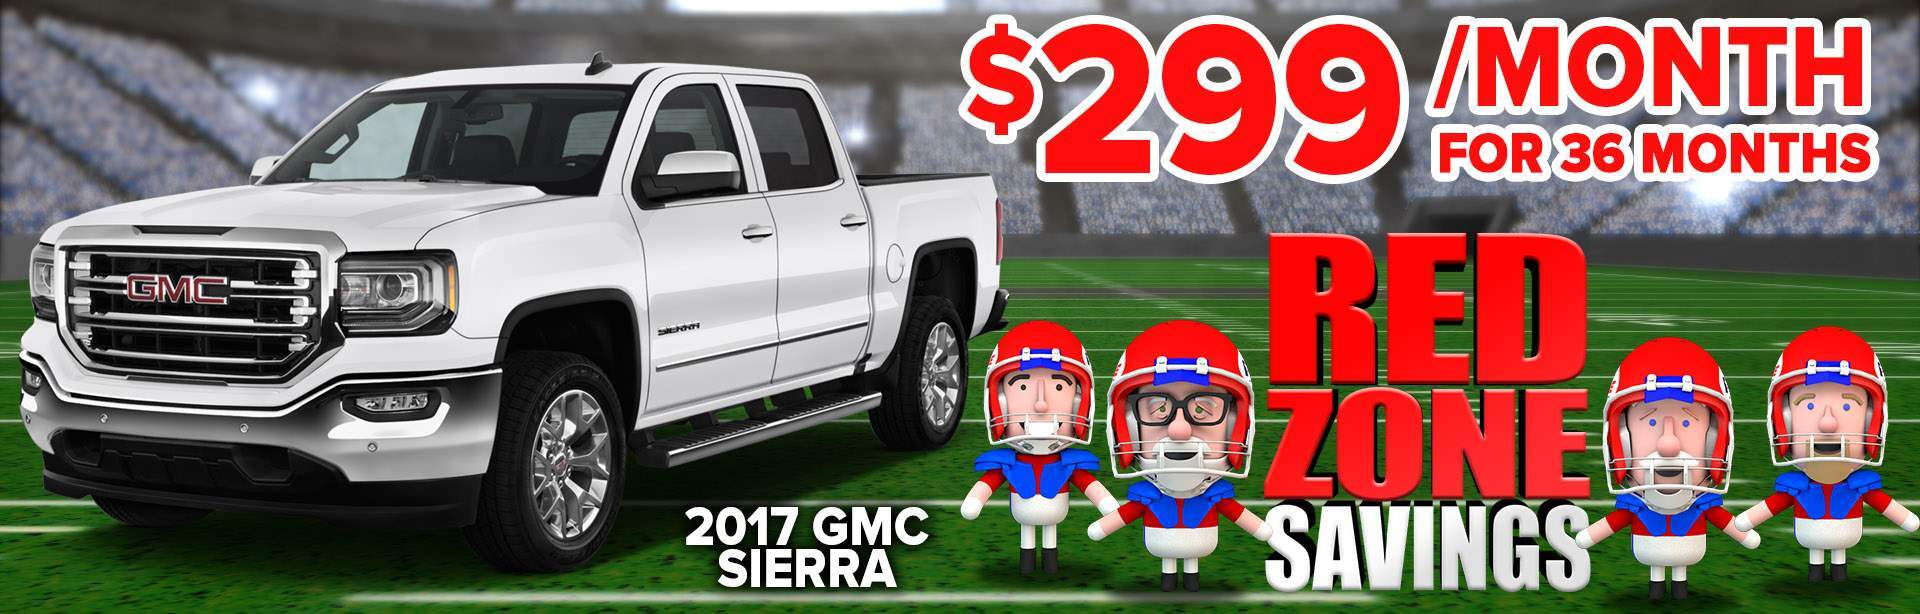 Red zone Savings GMC